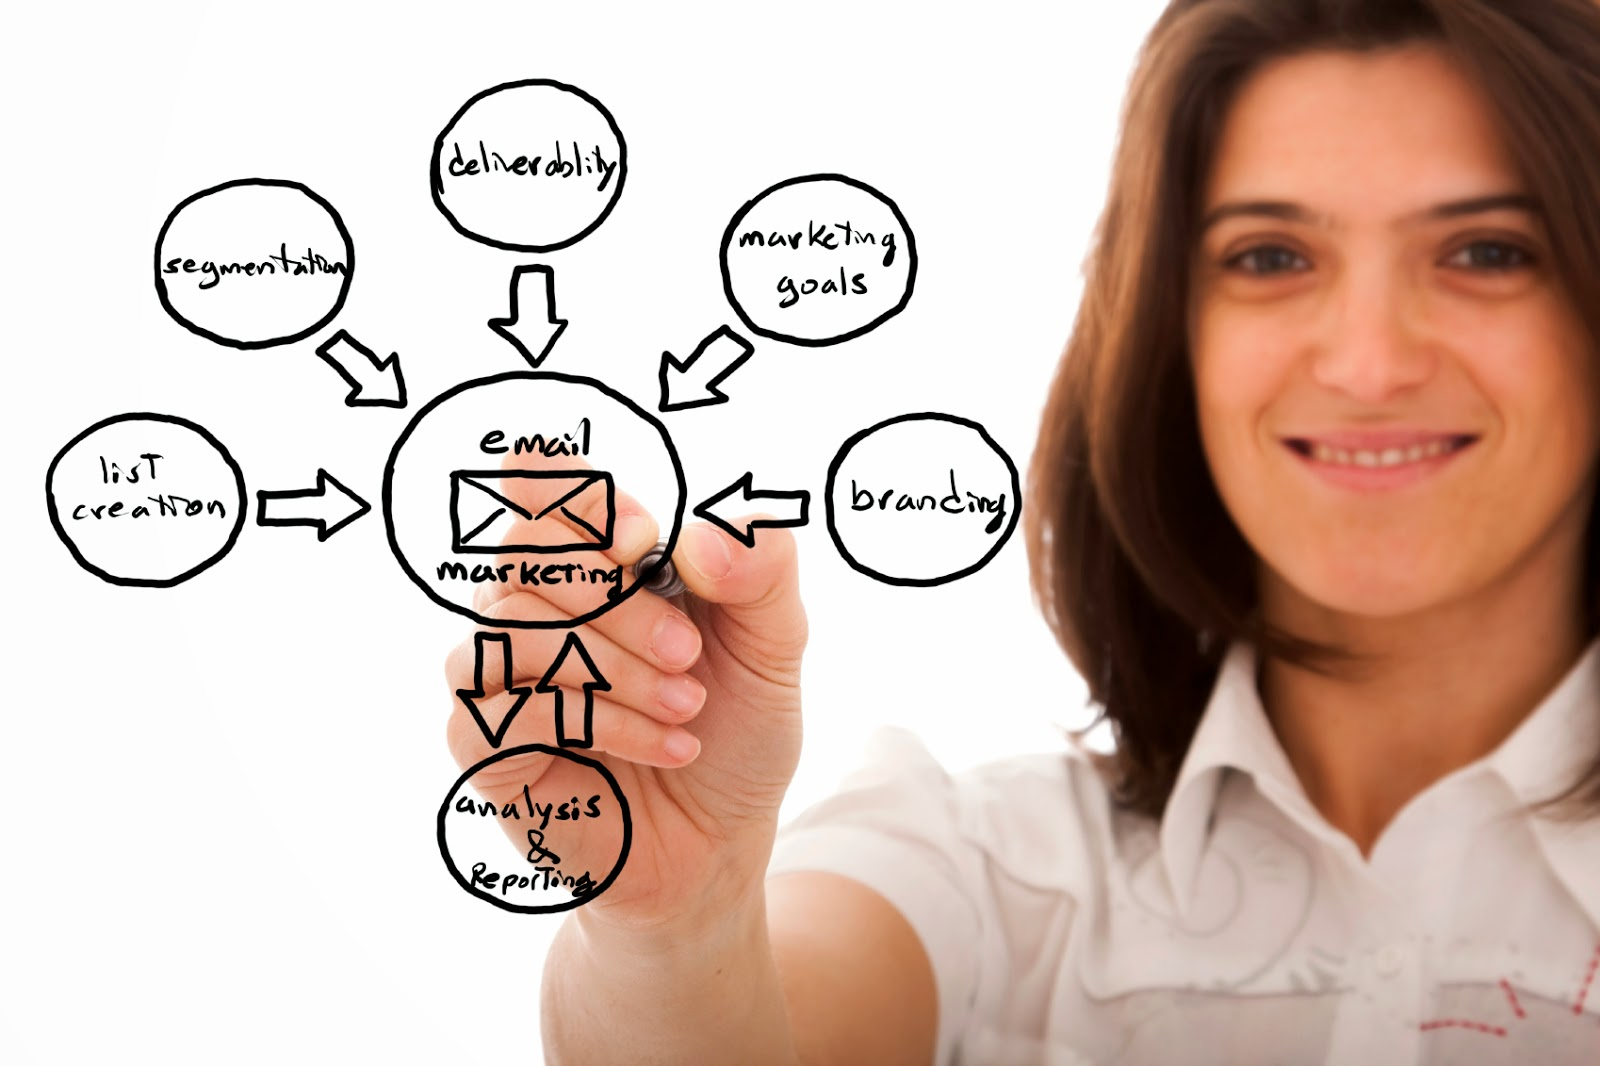 how to get business through email marketing,  How to start small business with email marketing?